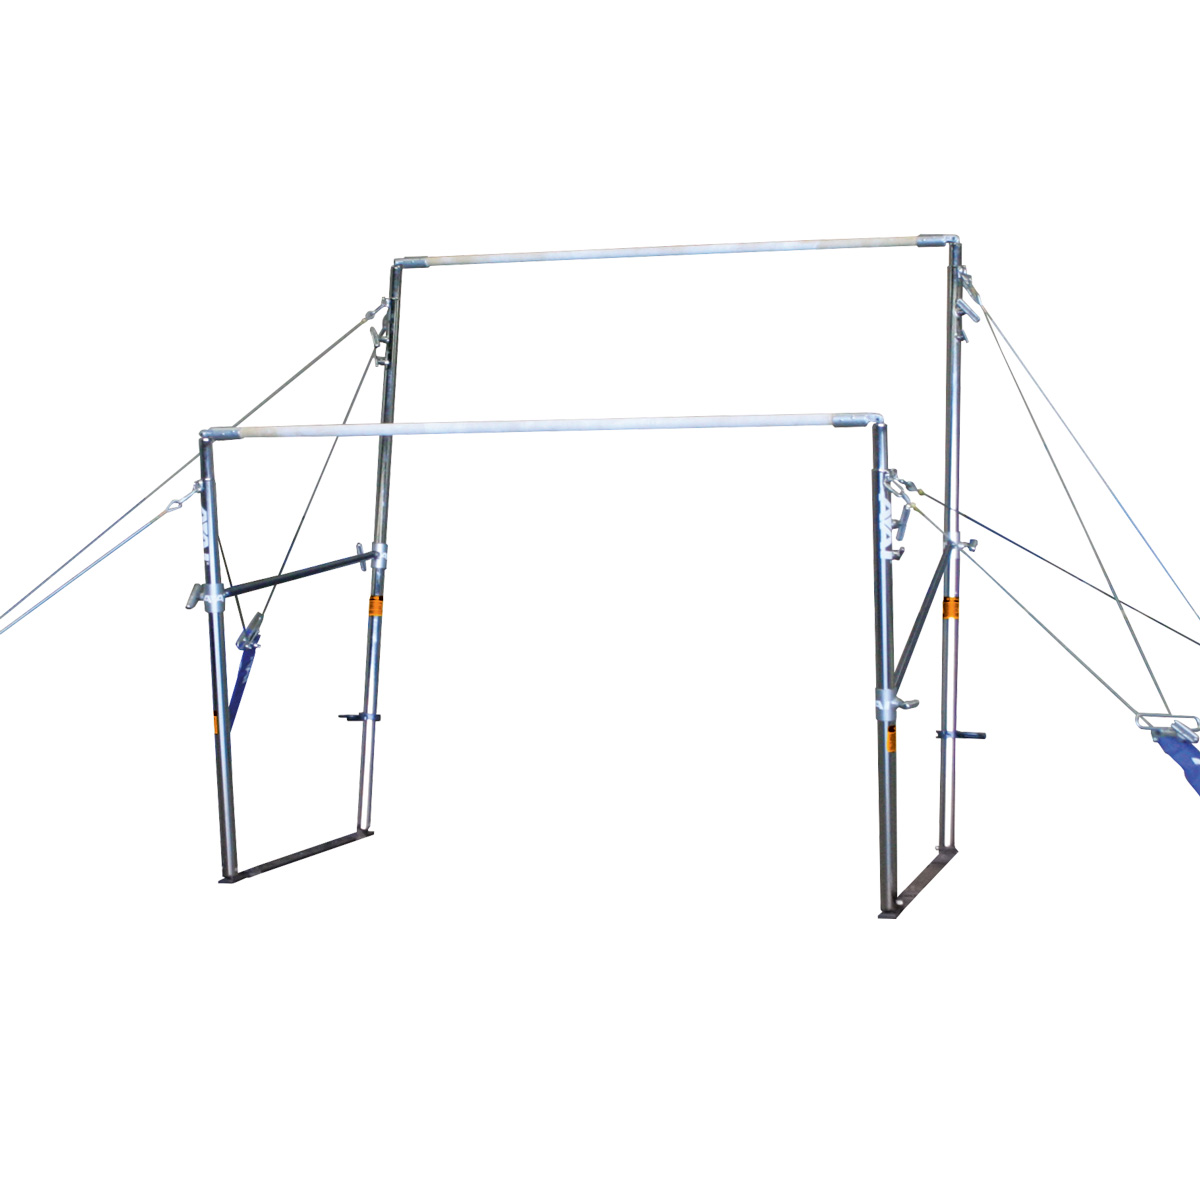 AAI Elite gymnastics Uneven Bars e or x rail - mancino mats